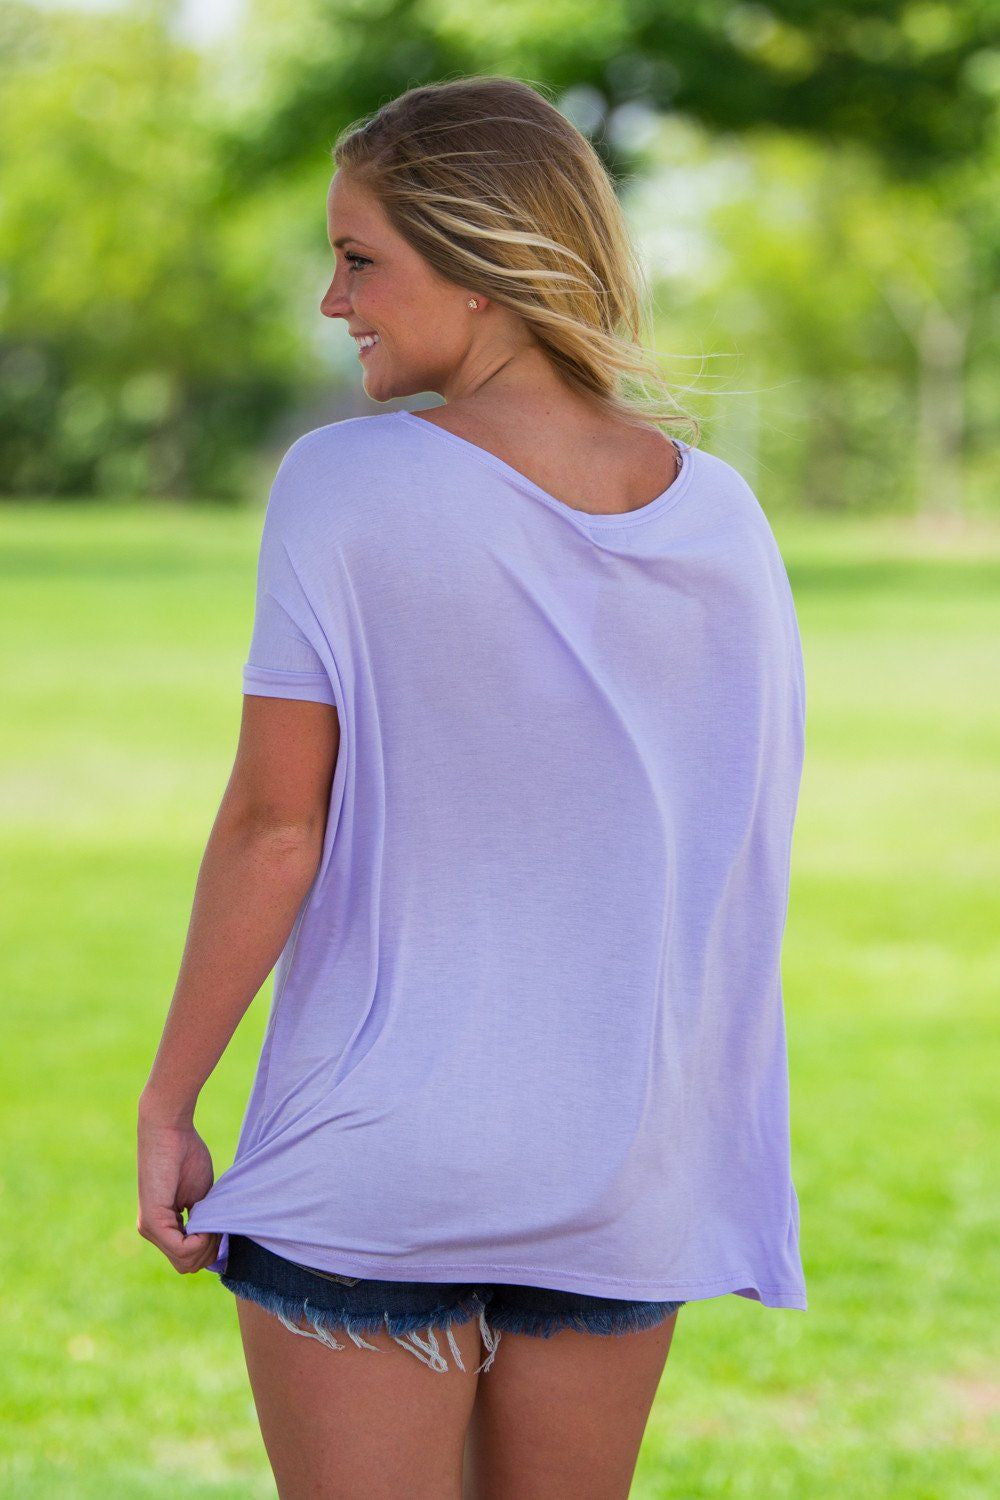 Short Sleeve Piko Top - Lilac - Piko Clothing